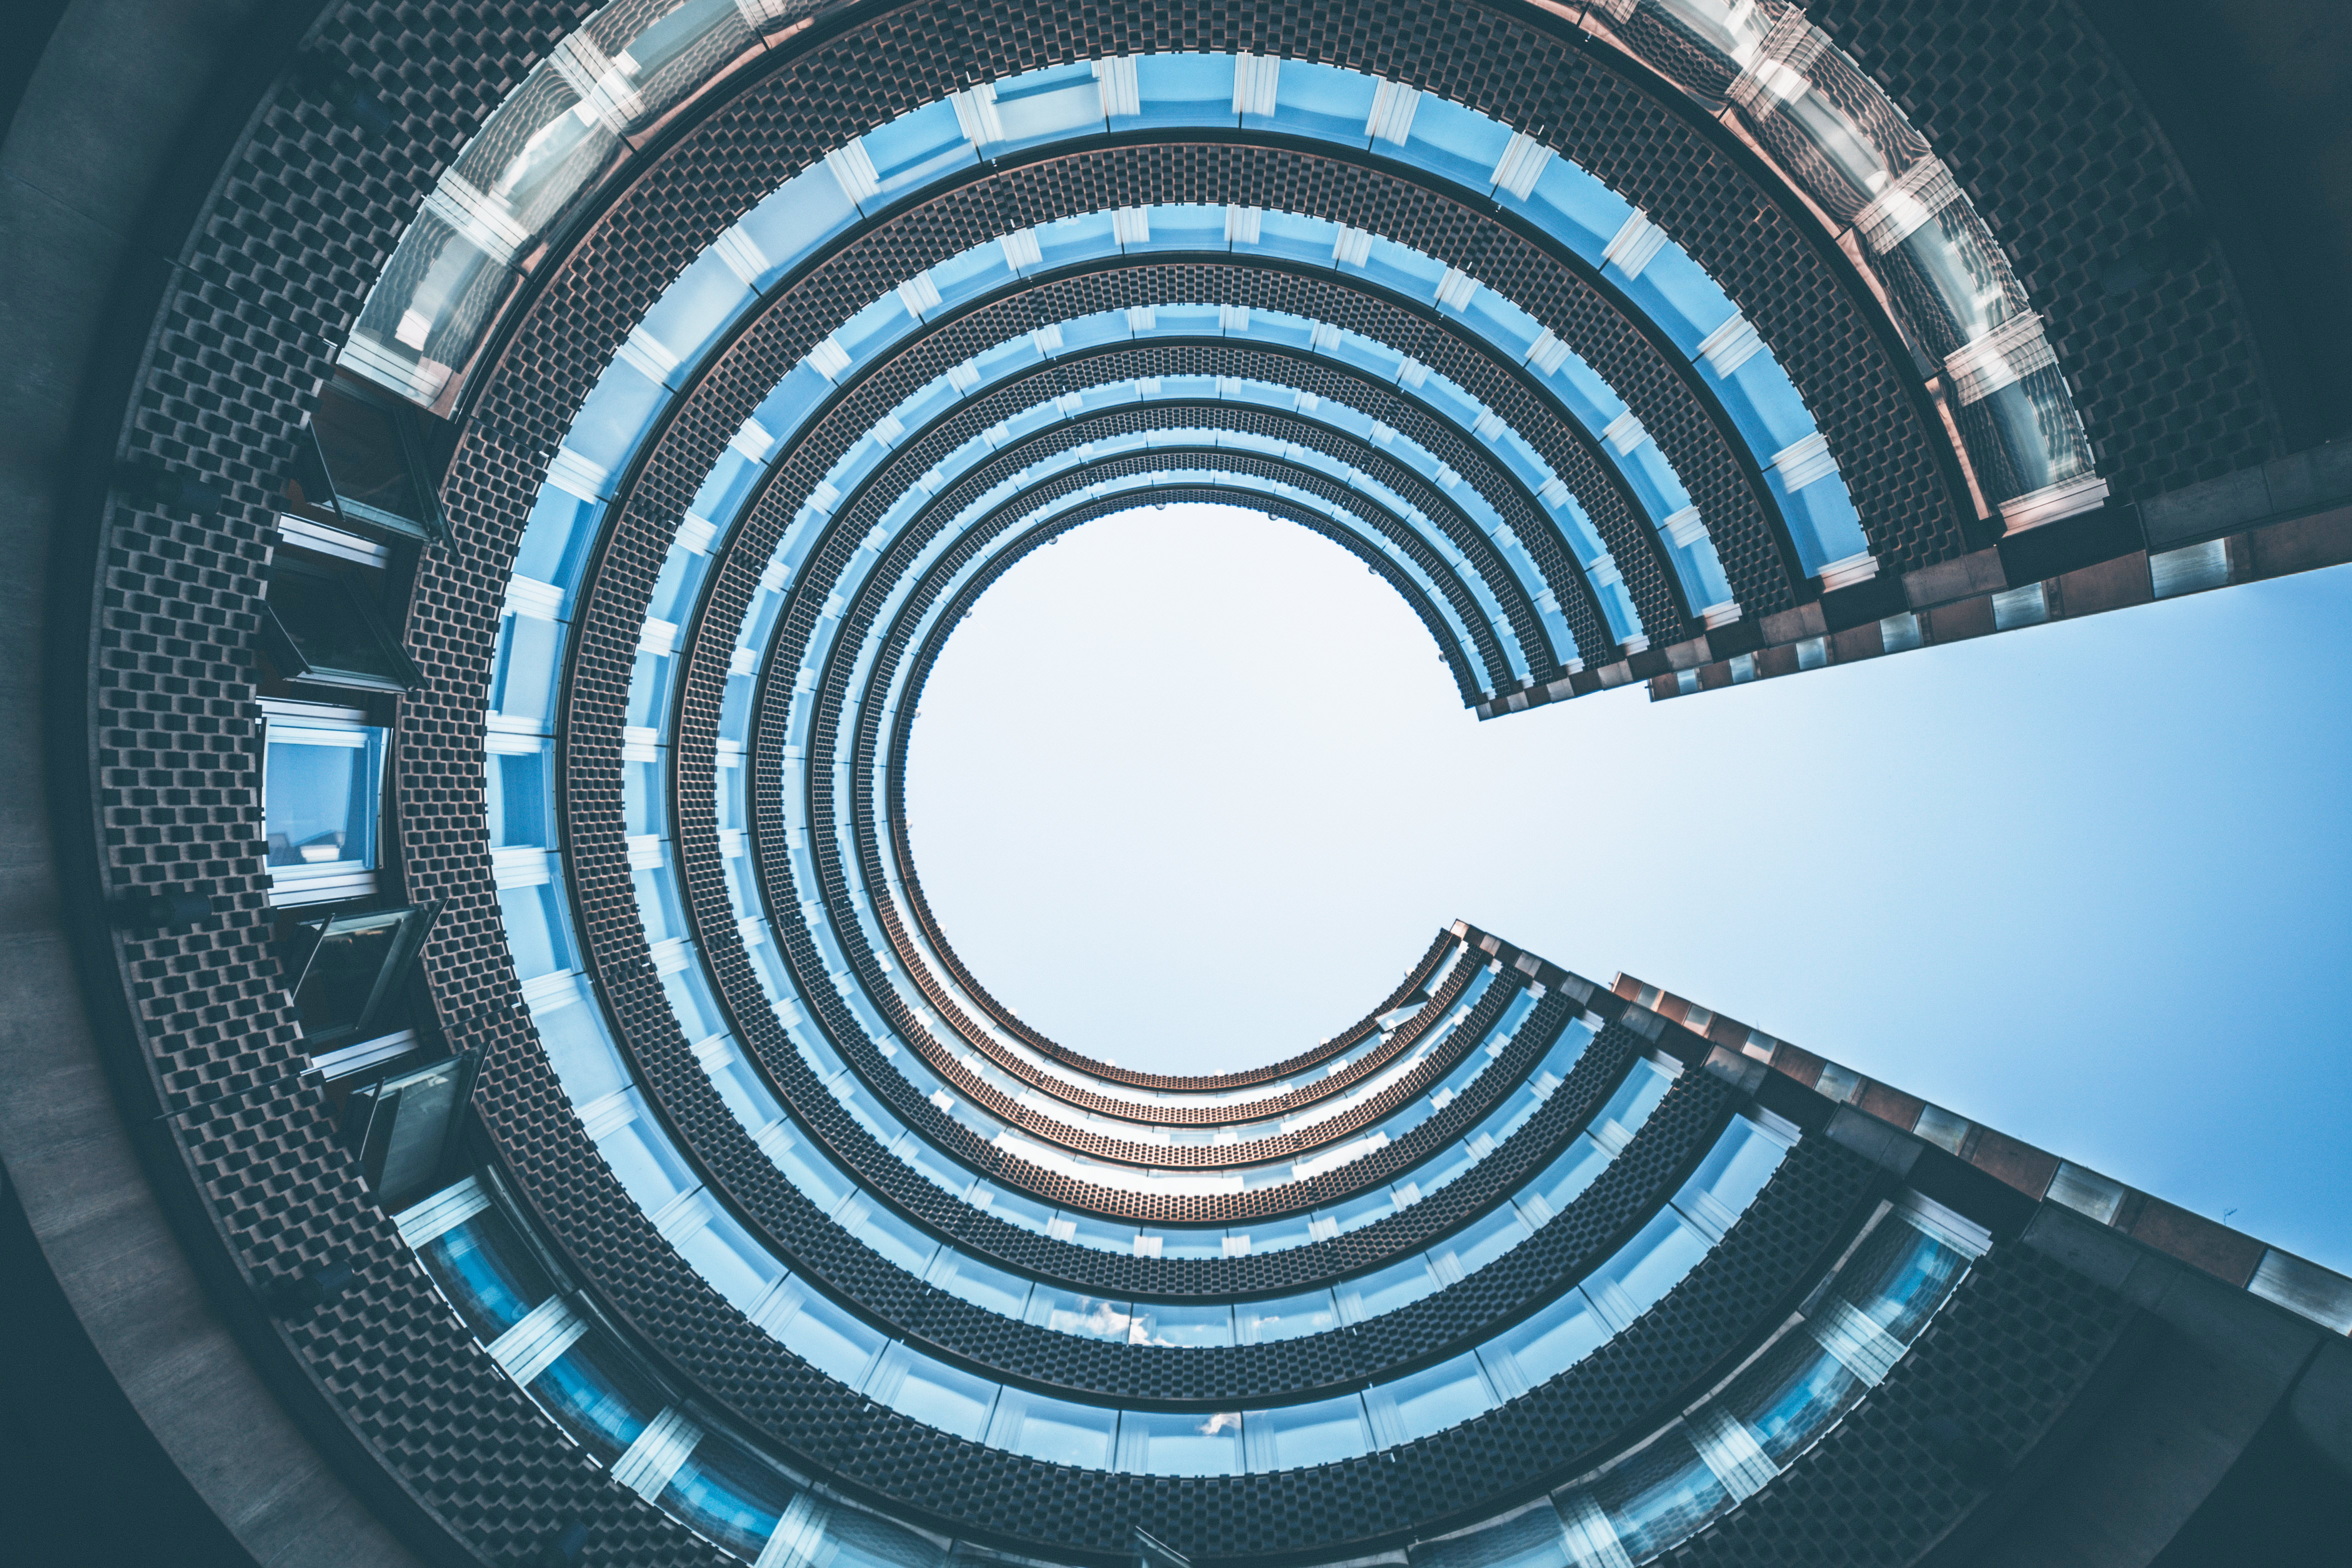 Worm's-eye view of a C-shaped glass building against a blue sky